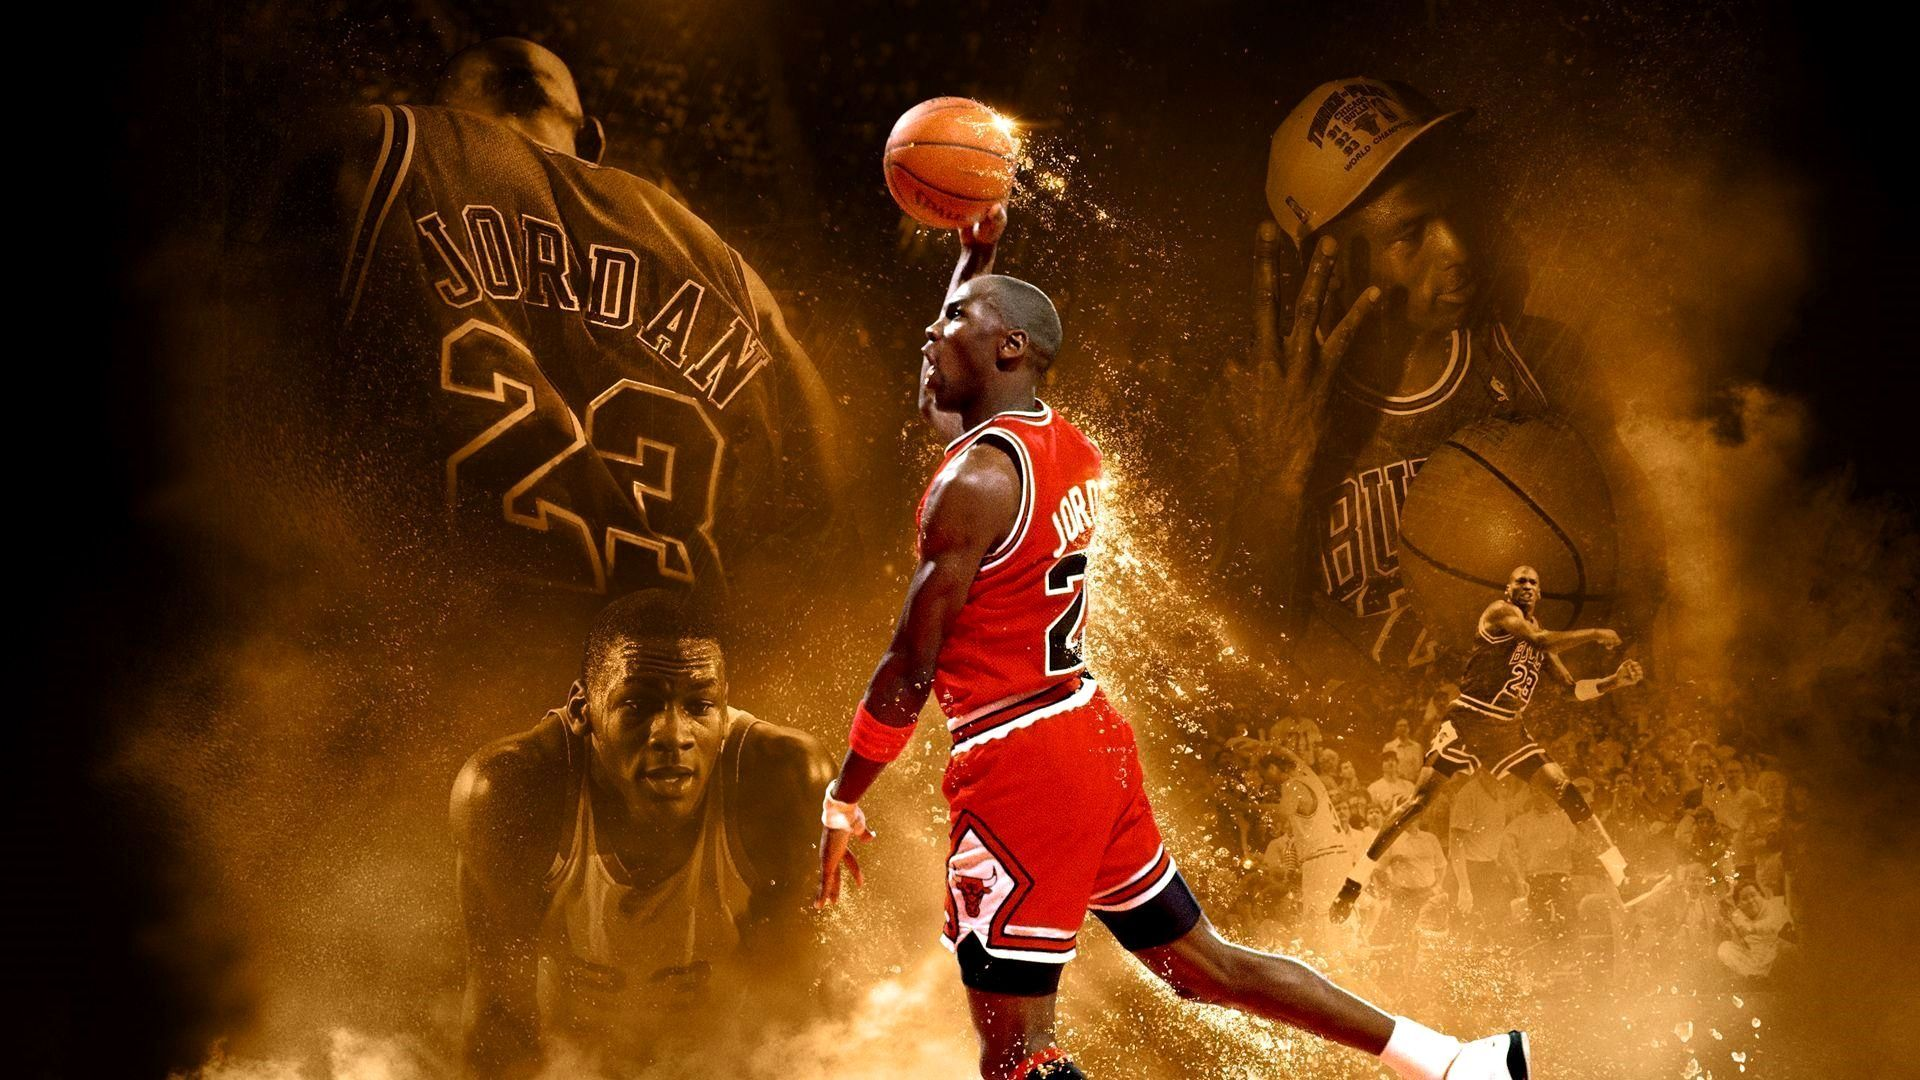 Nba Wallpaper 4k Pc Ideas 4k Nba Wallpapers Lebron James Wallpapers Michael Jordan